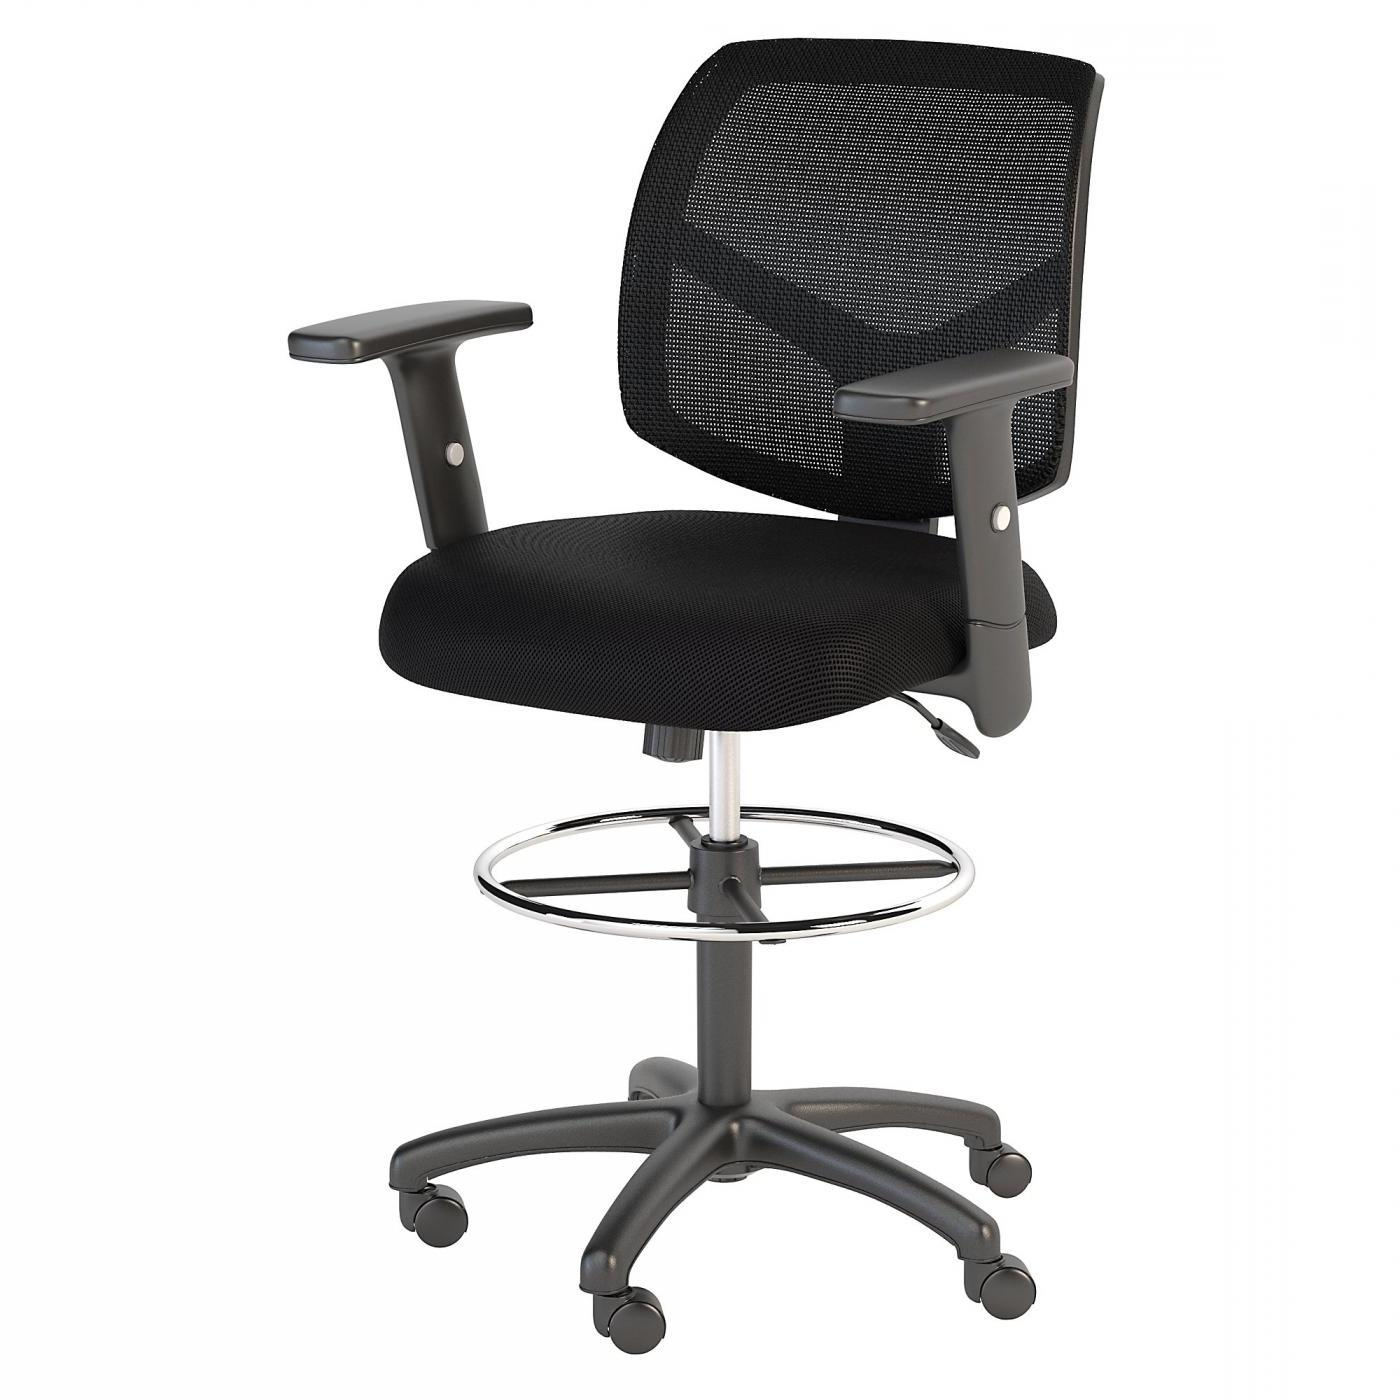 <font color=#c60><b>BUSH BUSINESS FURNITURE PETITE MESH BACK DRAFTING CHAIR WITH CHROME FOOT RING. FREE SHIPPING</font></b> </font></b></font></b>